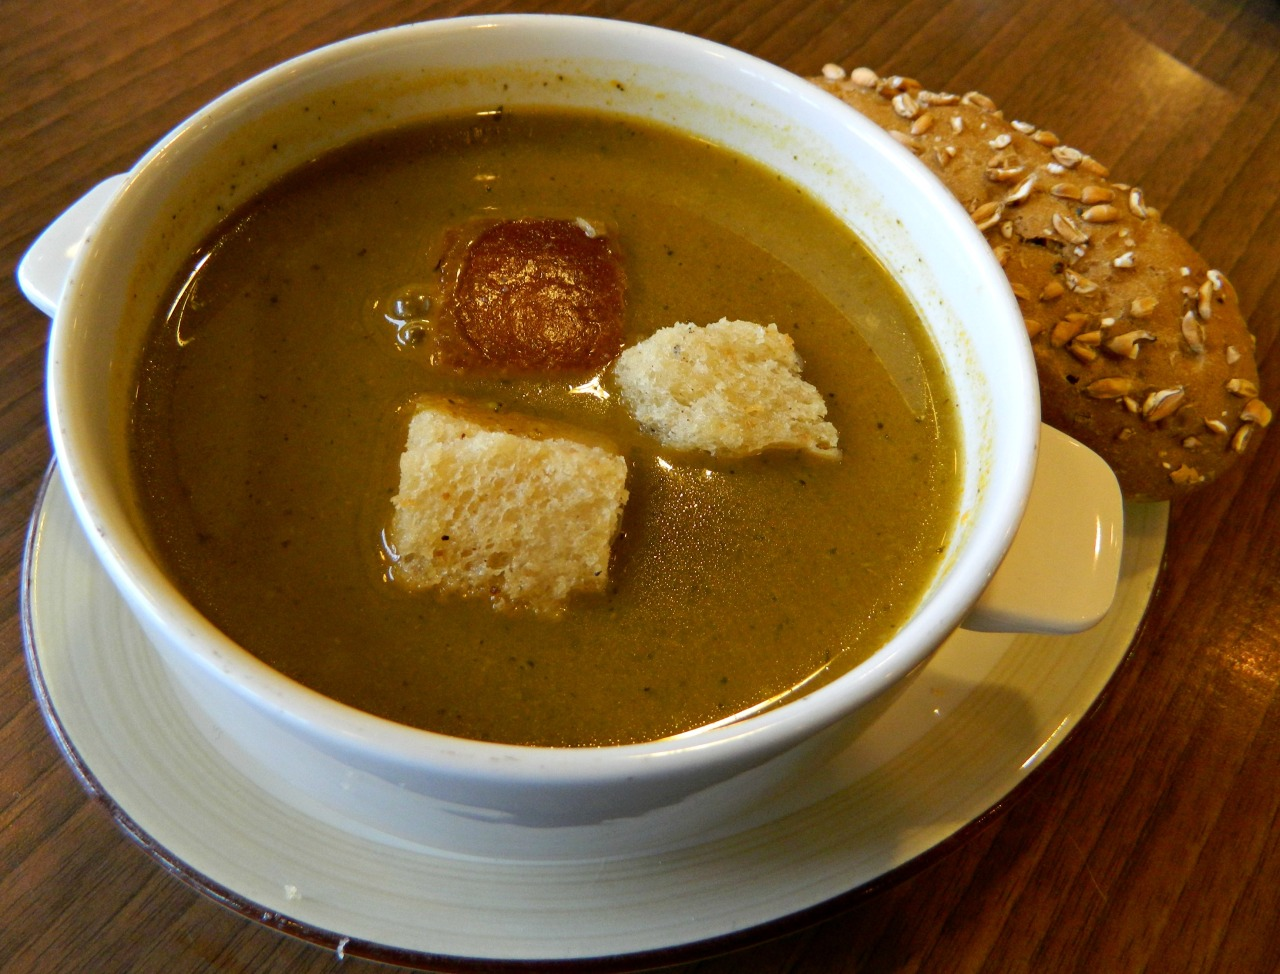 Vegetable soup with croutons and wholegrain sunflower seed bread.